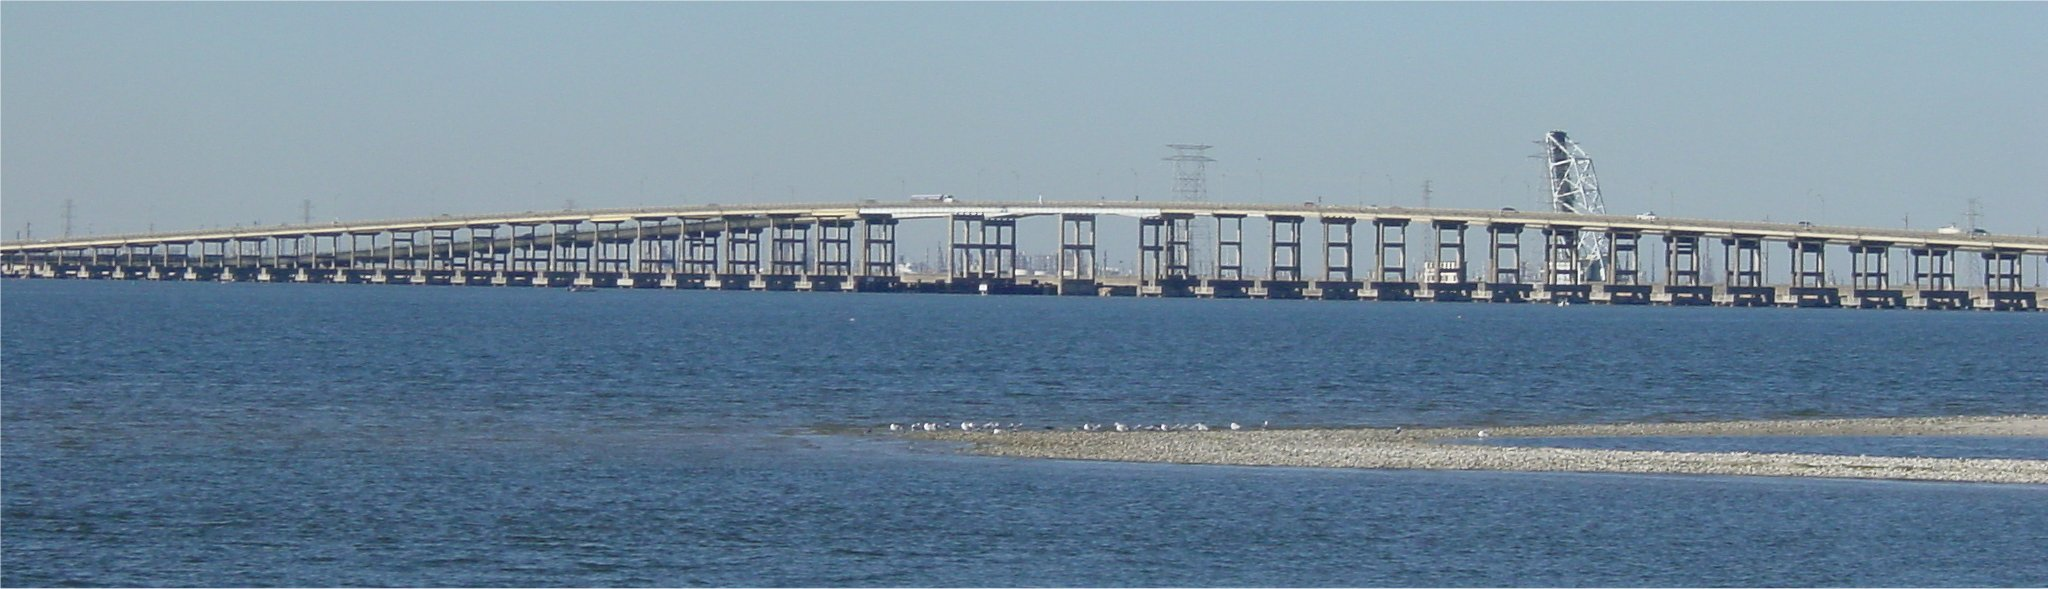 http://www.texasfreeway.com/houston/photos/45_galveston/images/causeway_side_4_hres.jpg